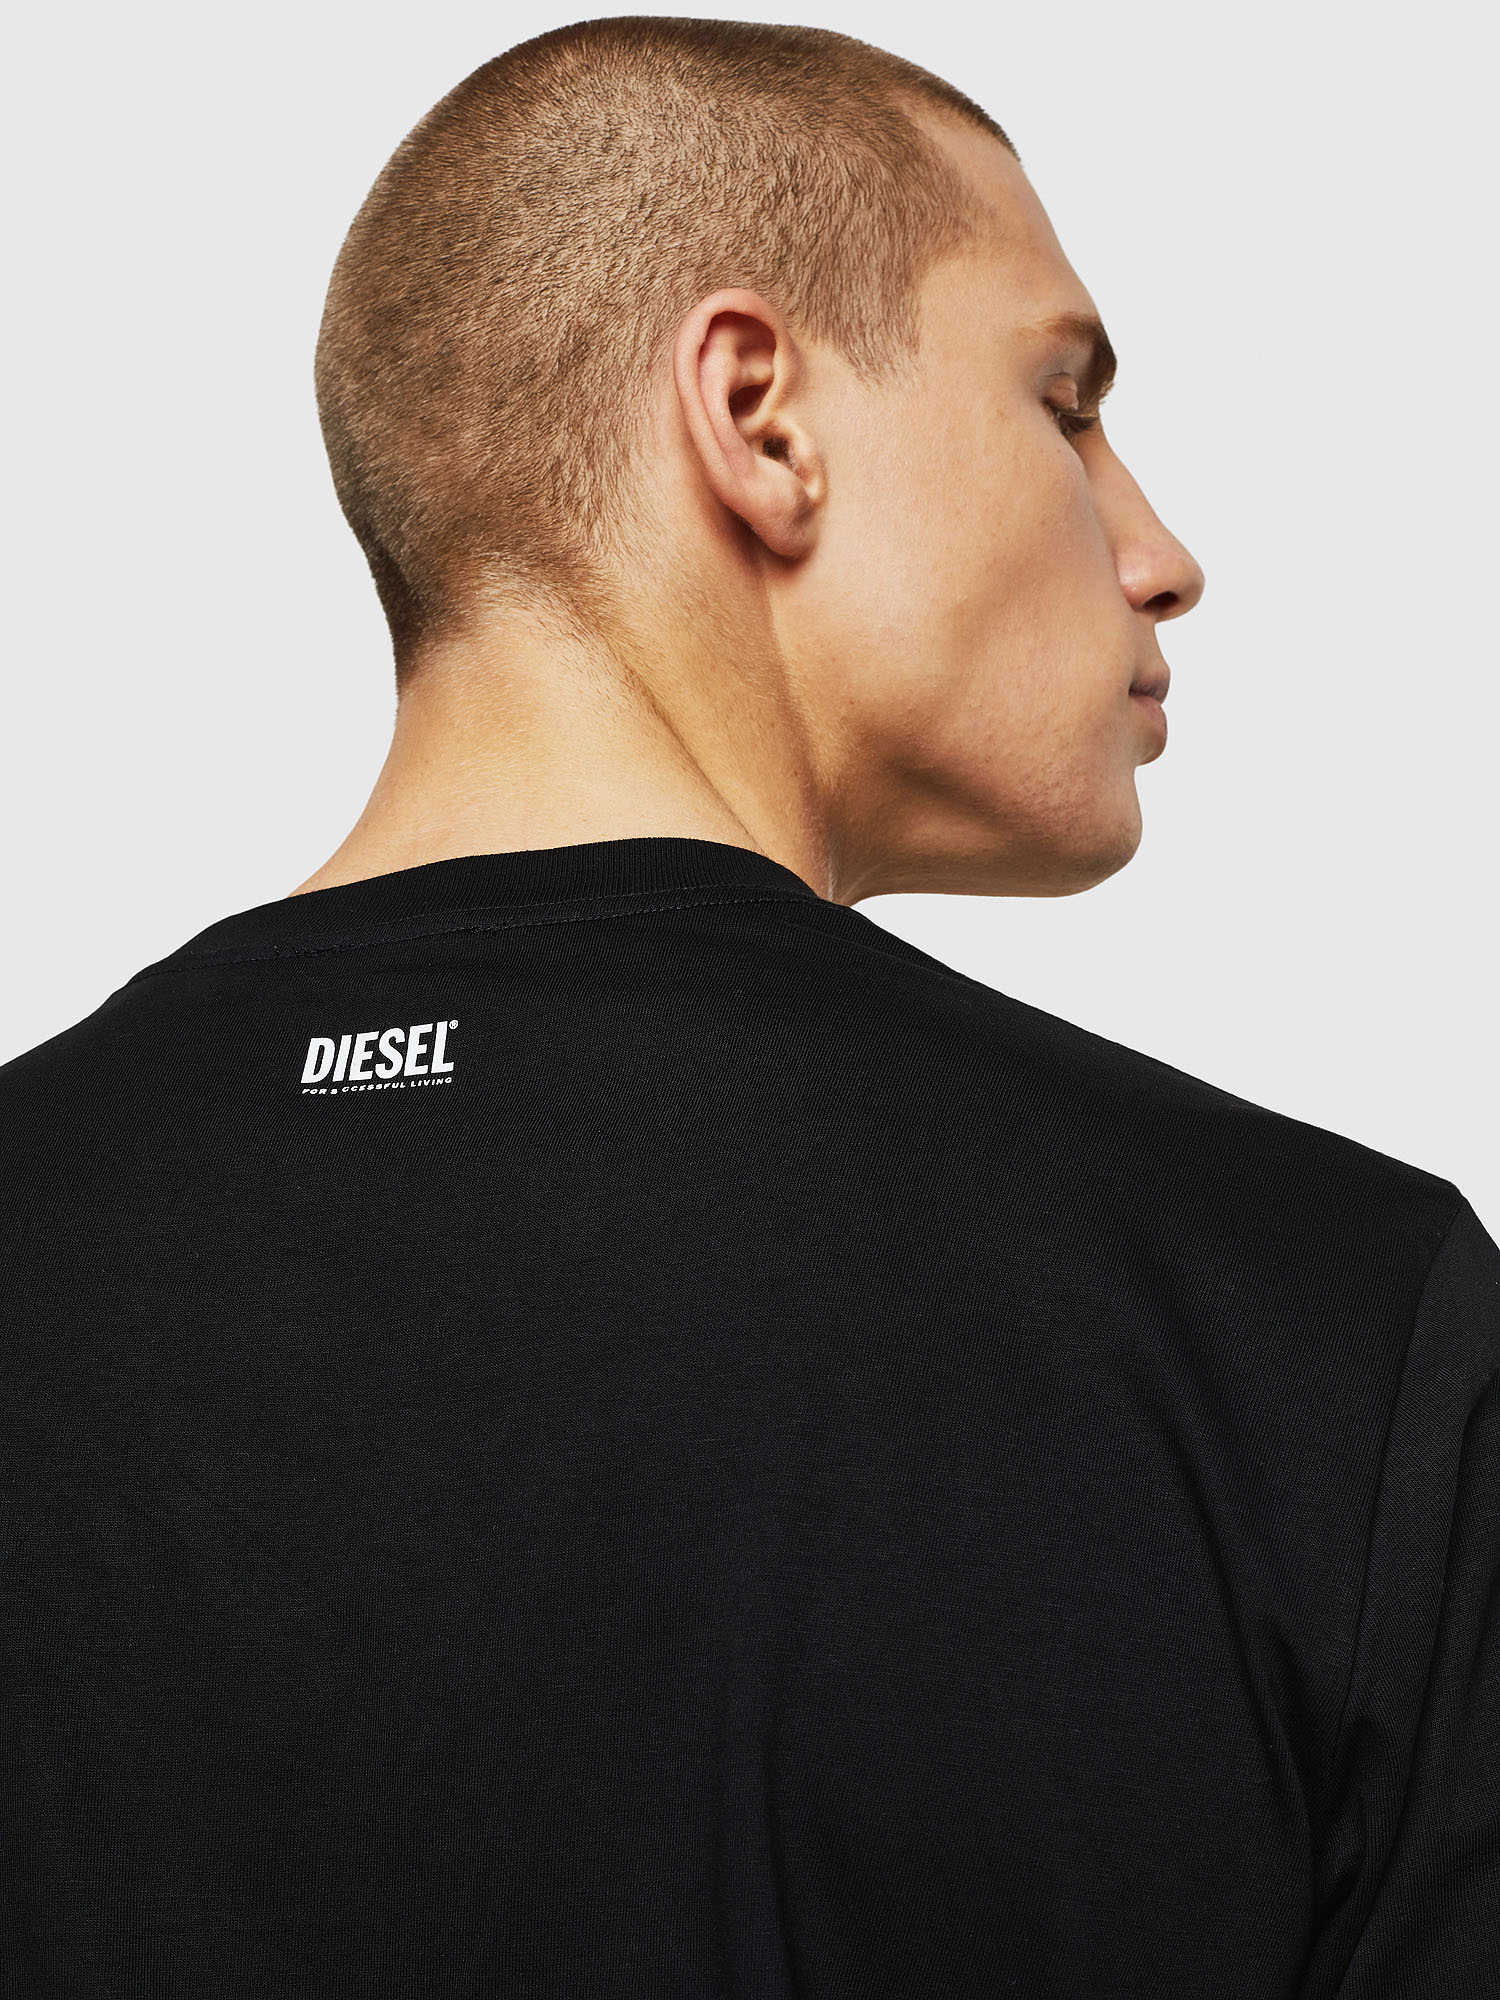 Diesel - T-JUST-BX1,  - T-Shirts - Image 3